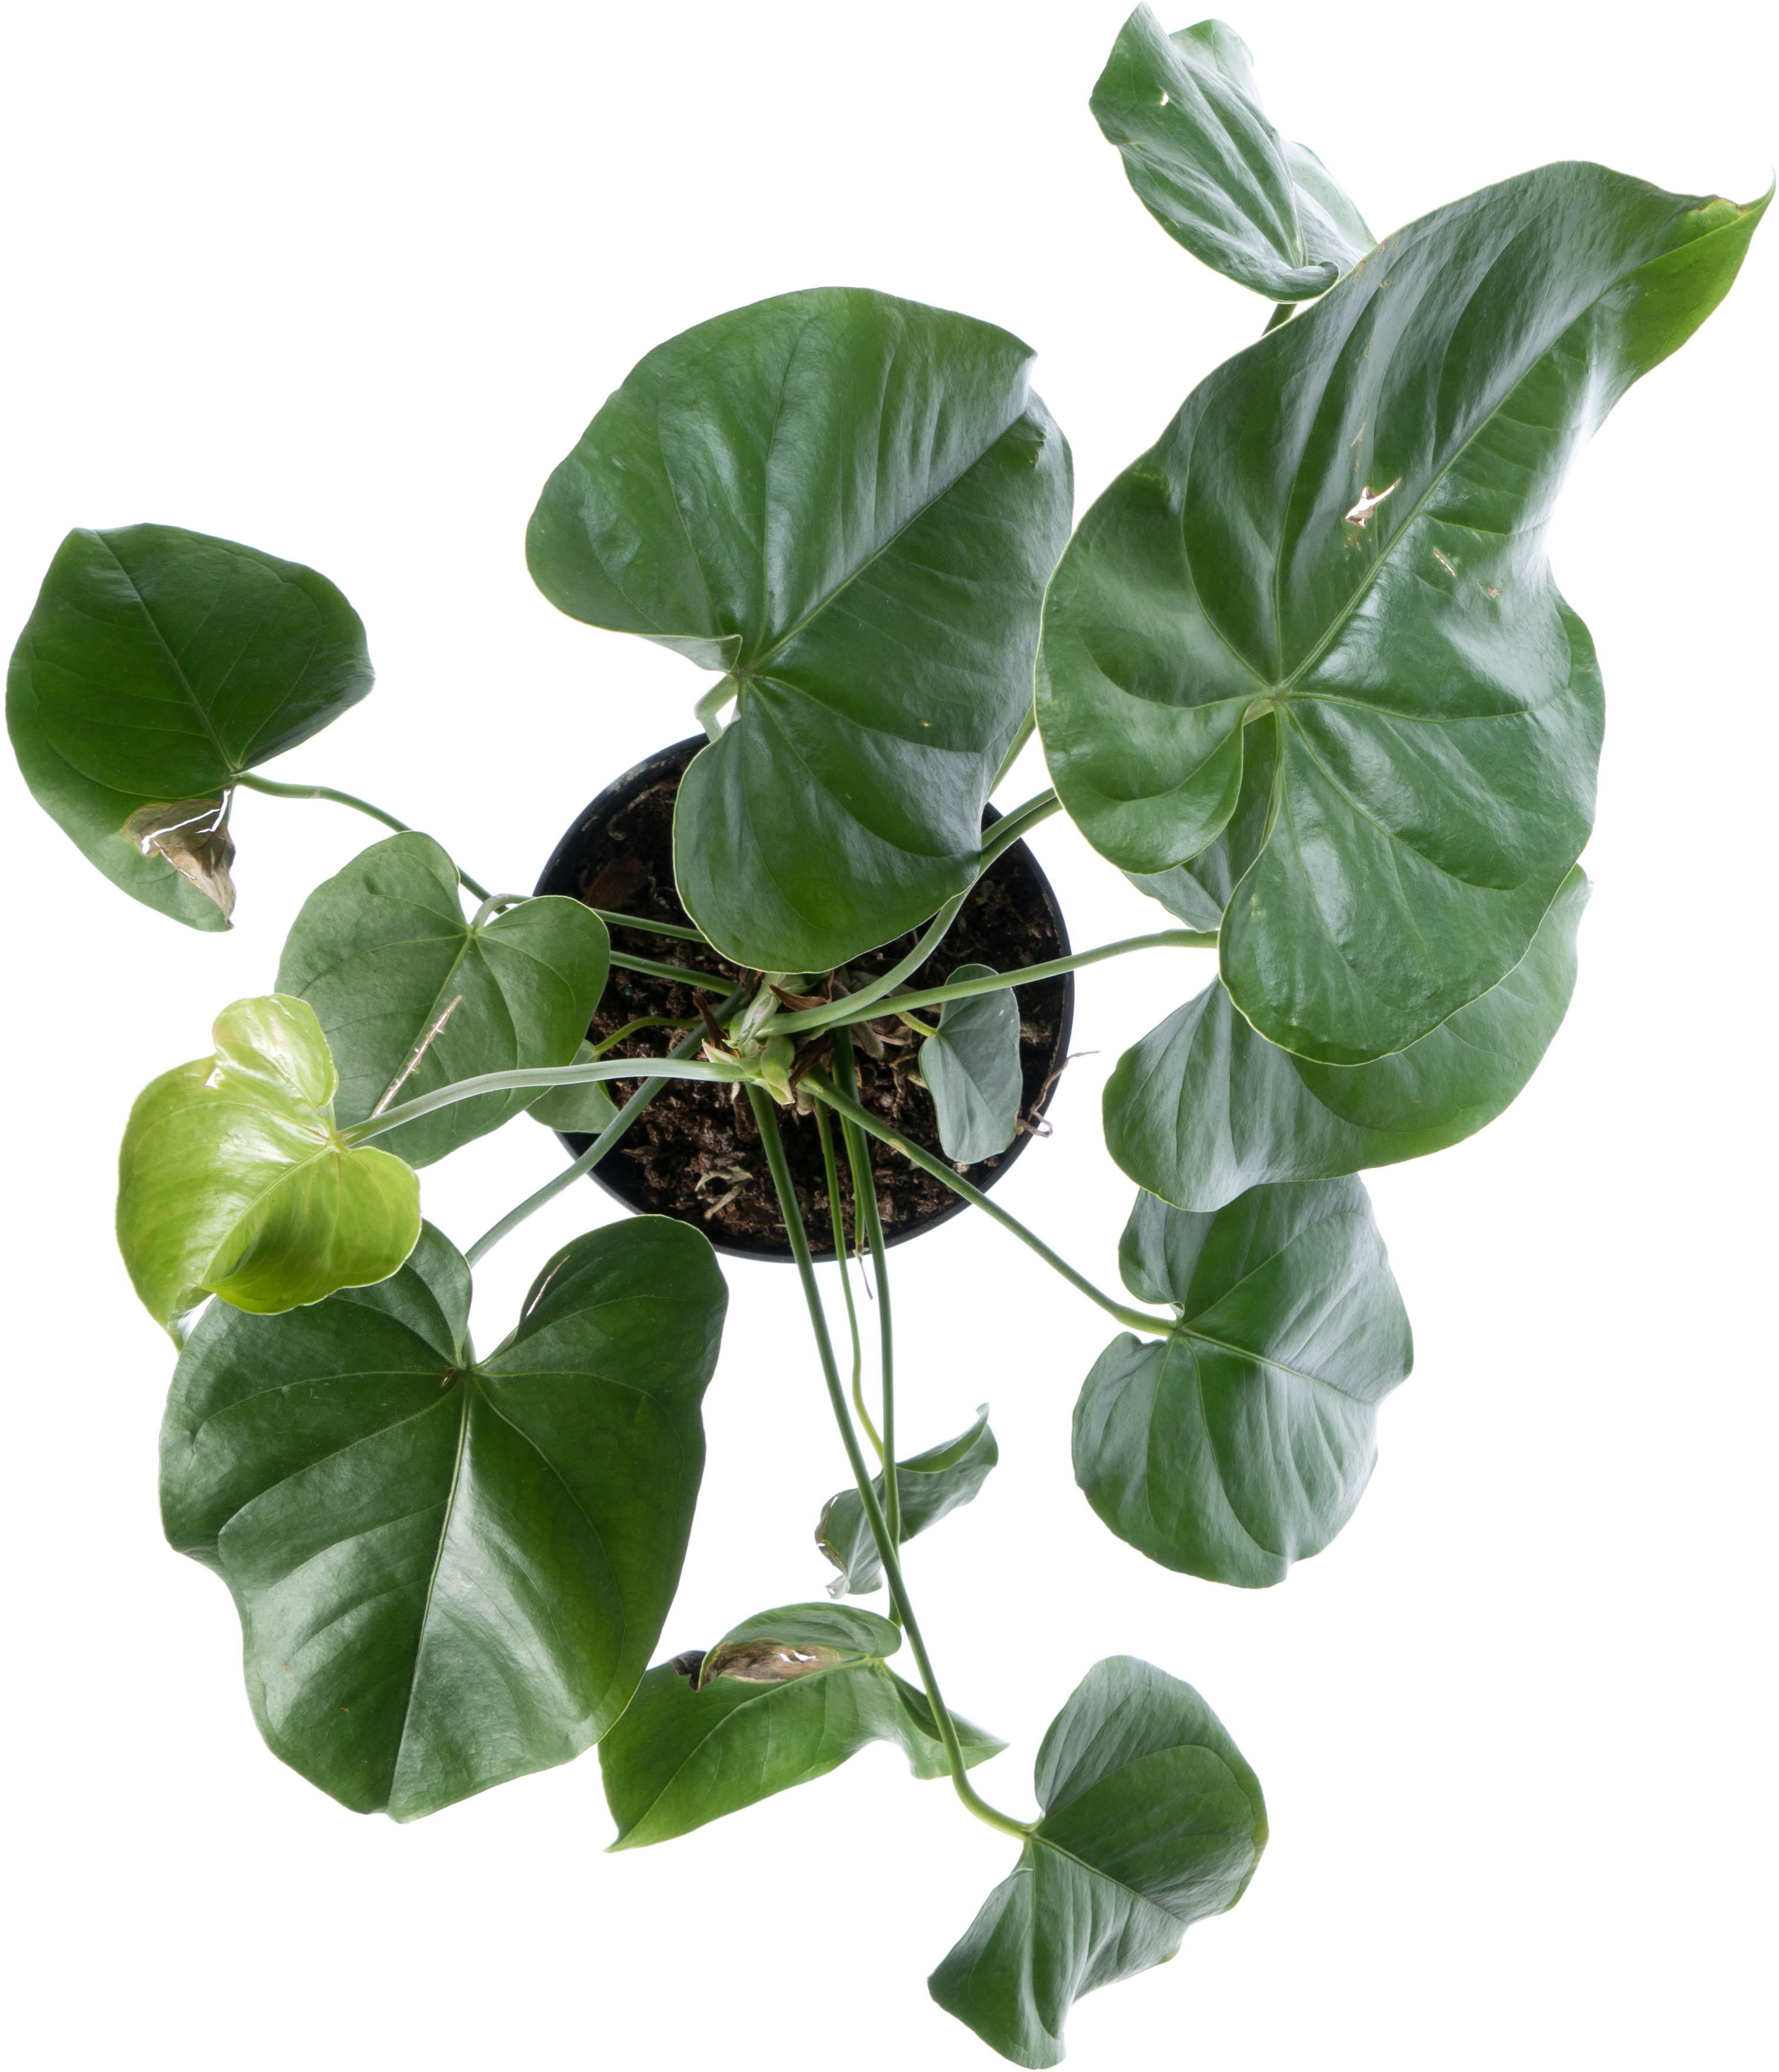 Leafy potted plant